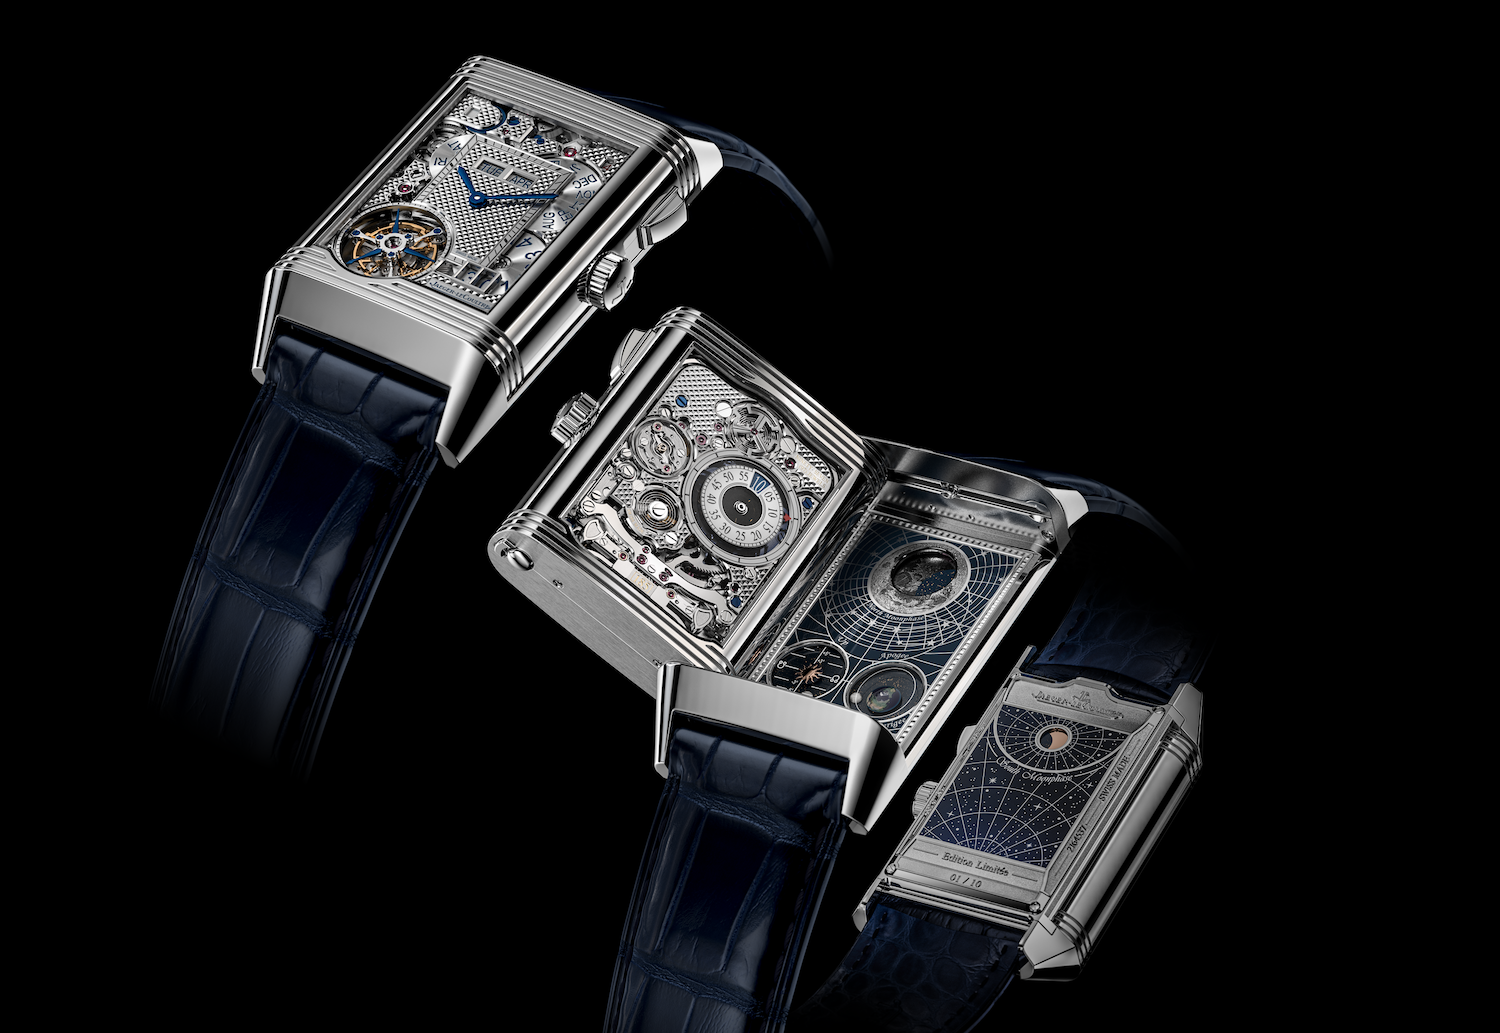 New Jaeger-LeCoultre Reverso Hybris Mechanica Quadriptyque Is A Cosmos On The Wrist